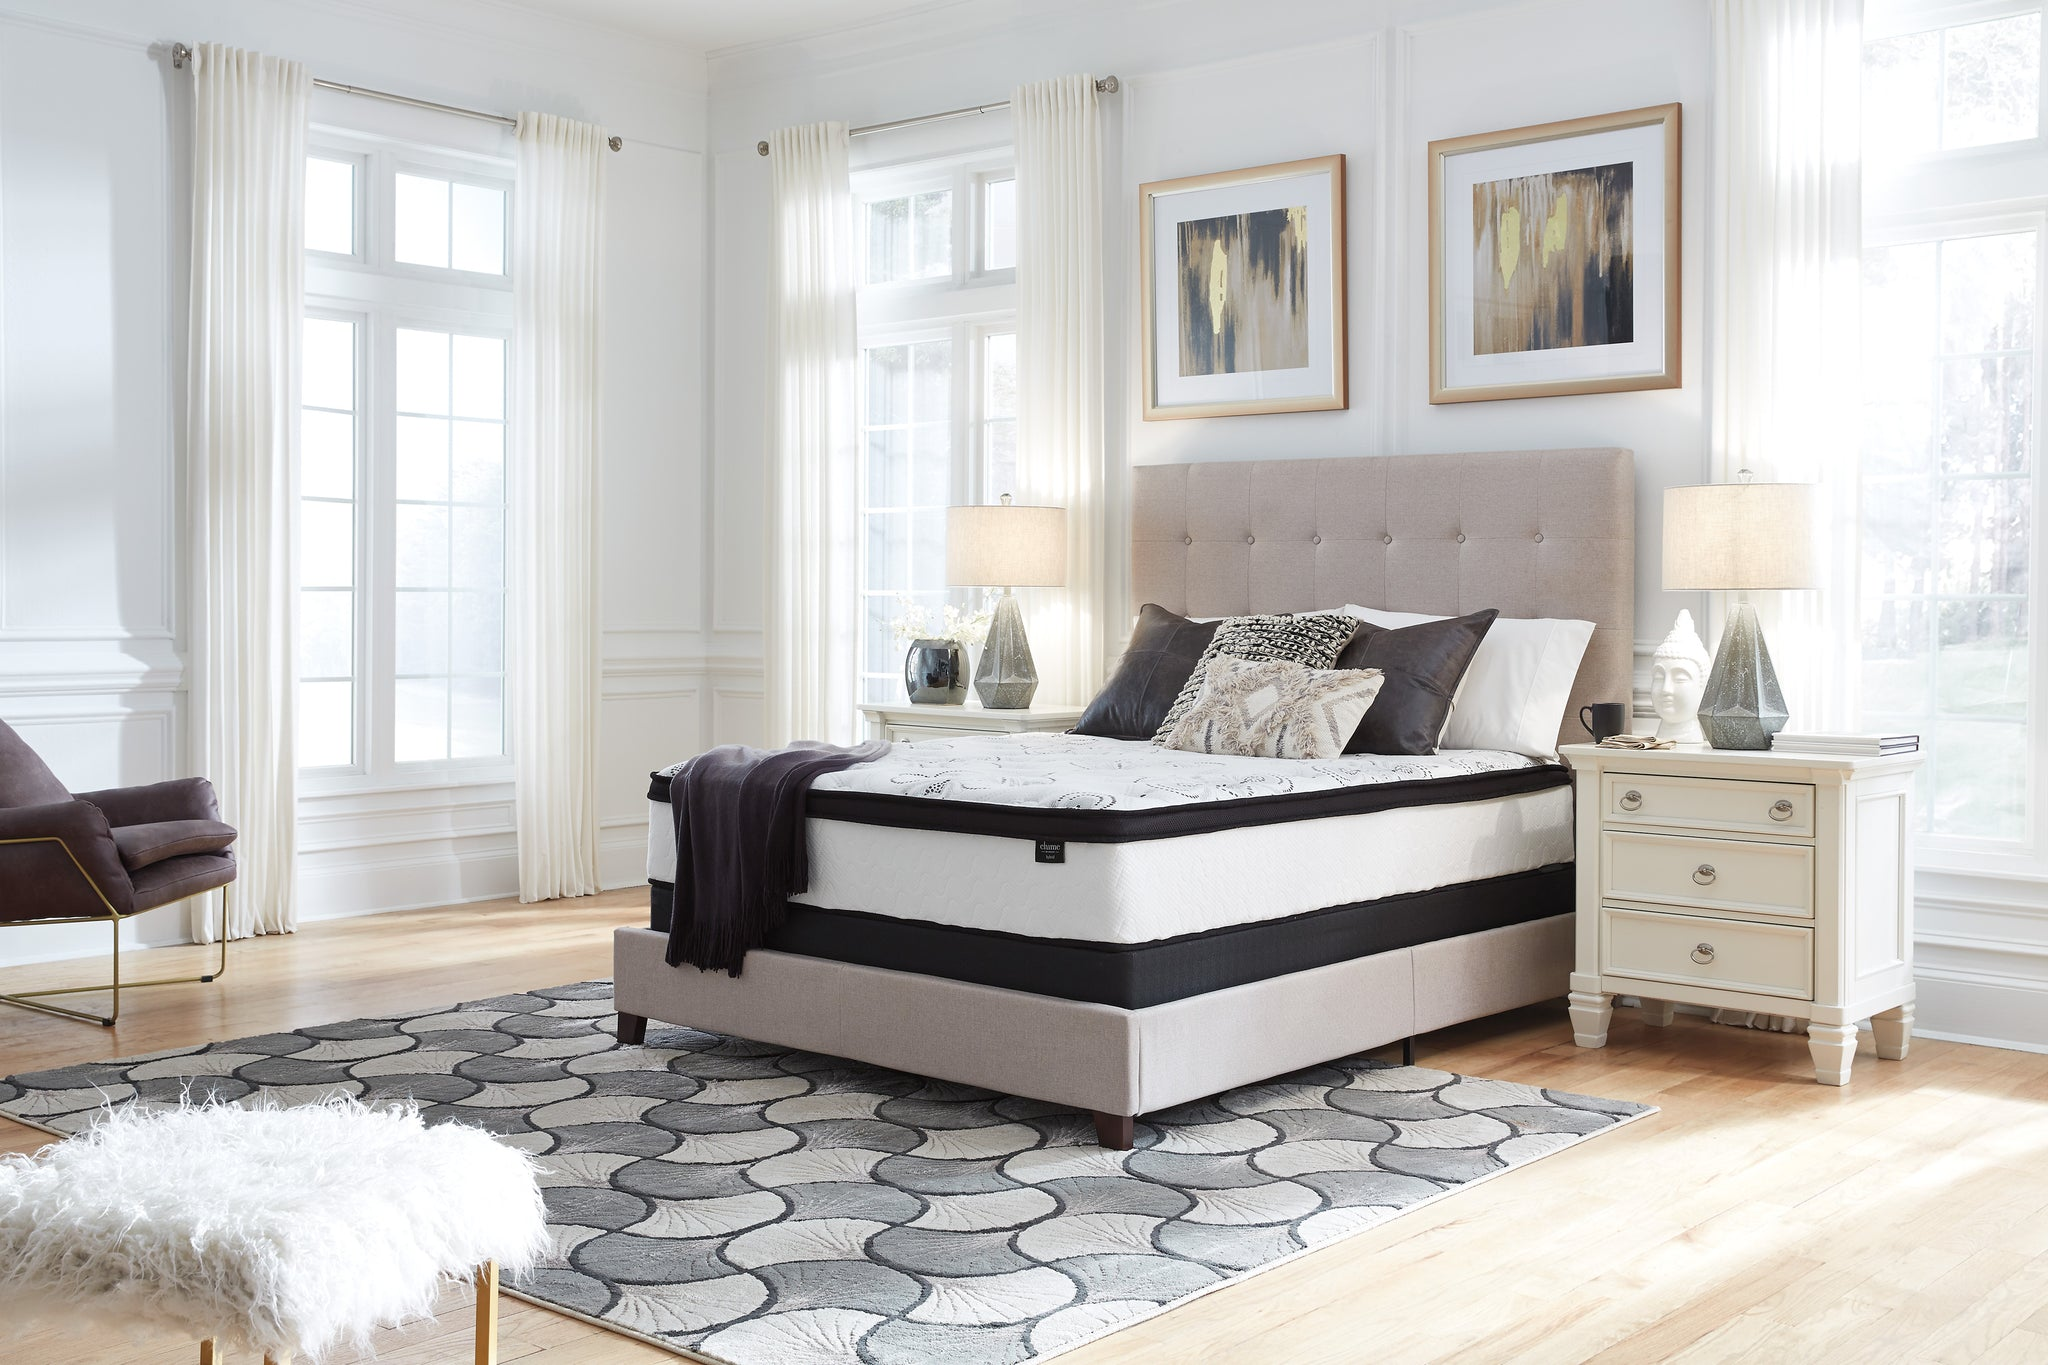 Ashley Sleep M69731  Chime 12 Inch Hybrid - White Collection -Queen Mattress